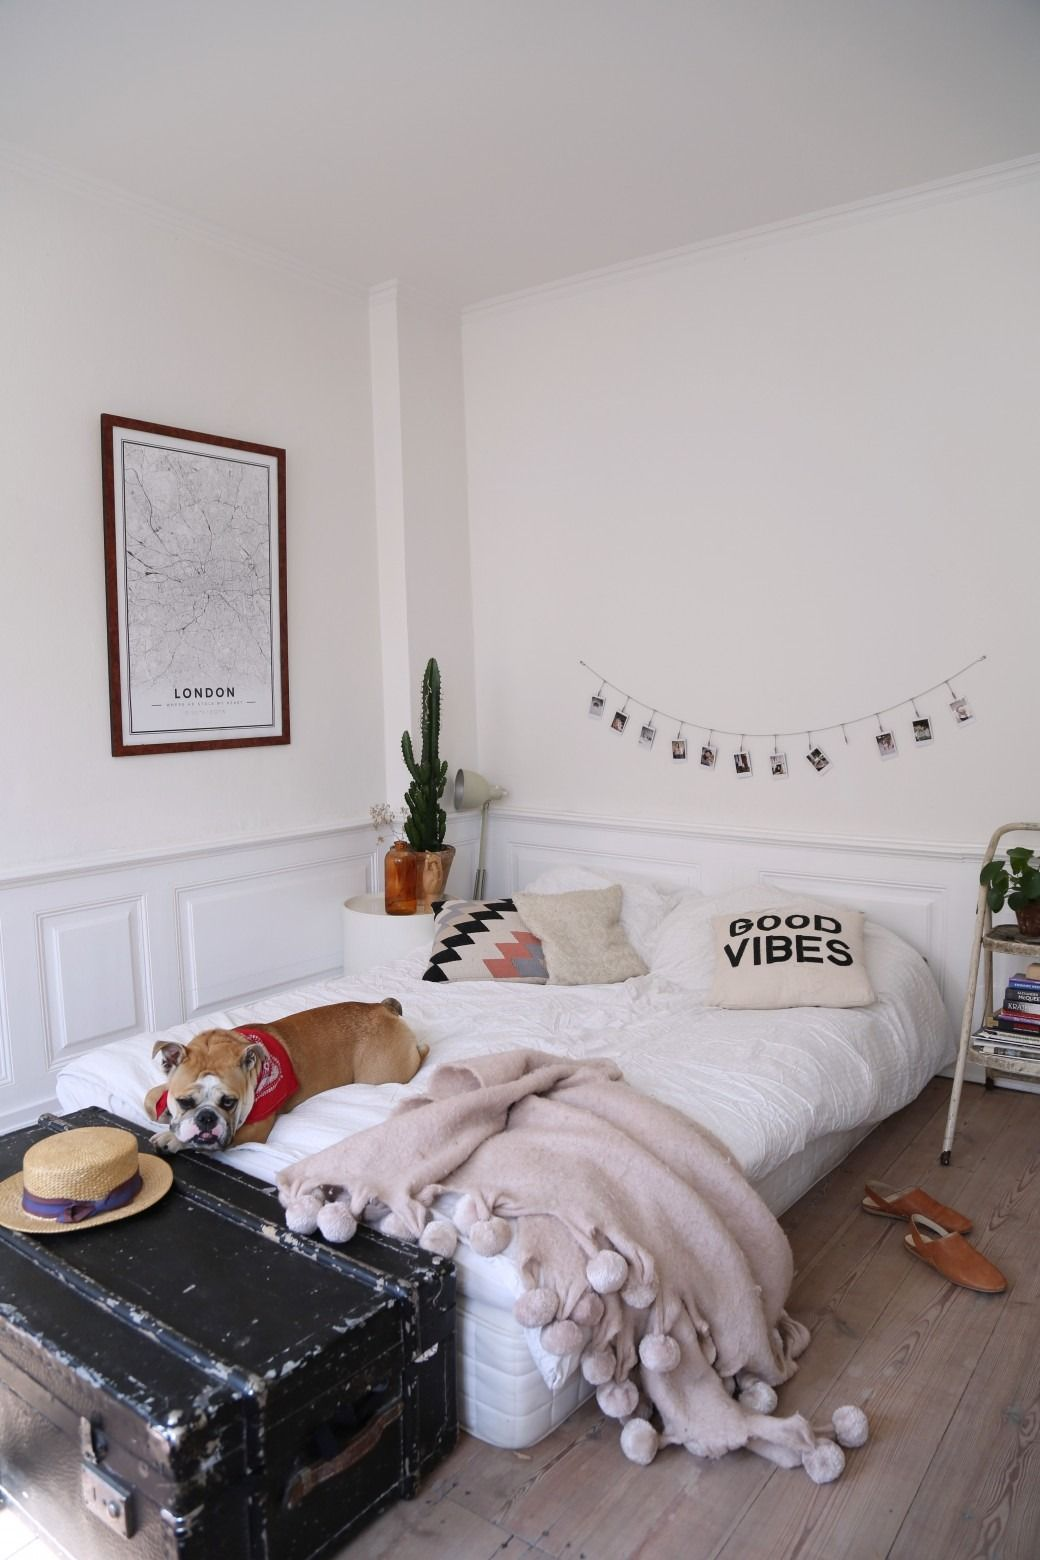 pinterest:tobieornottobie | a b o d e | pinterest | bedrooms, room